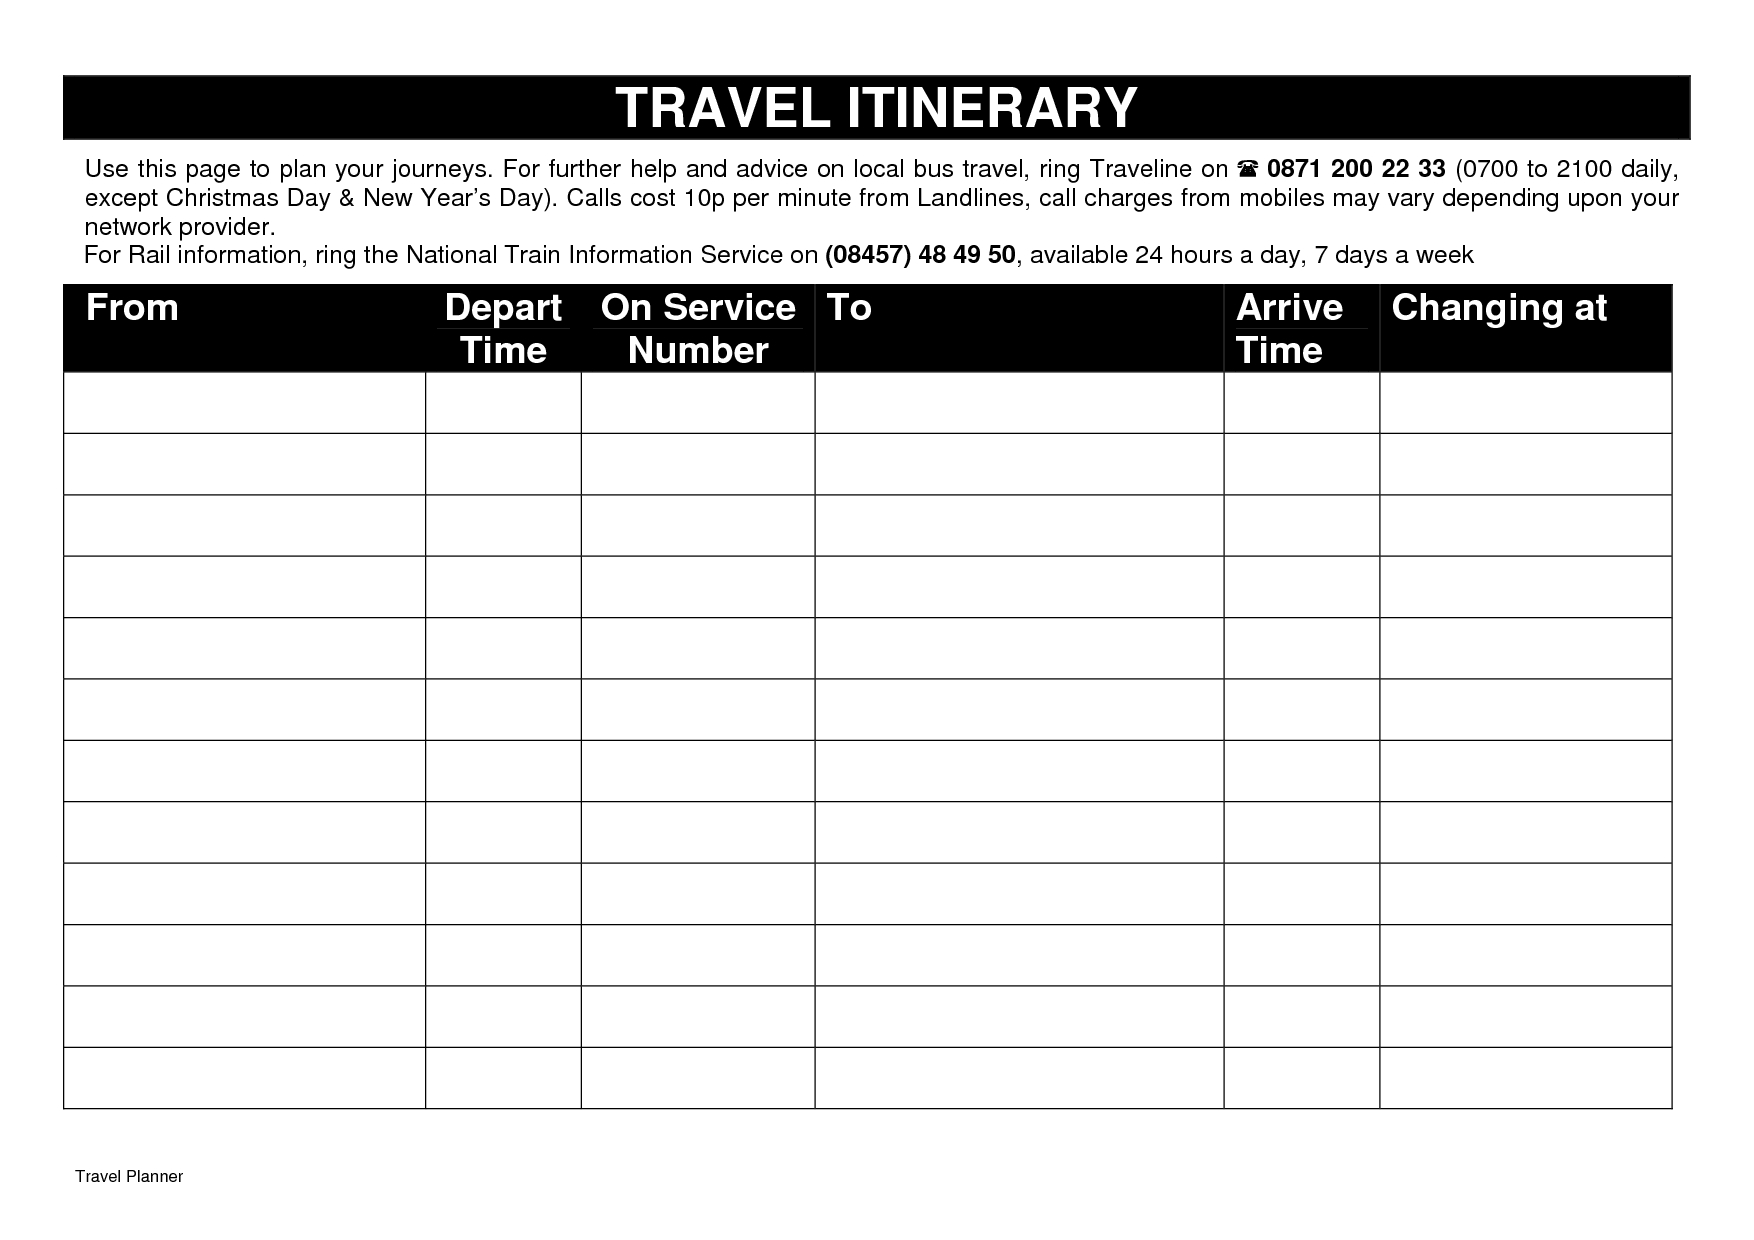 Template: Free Travel Itinerary Template. Travel Itinerary Template - Free Printable Itinerary